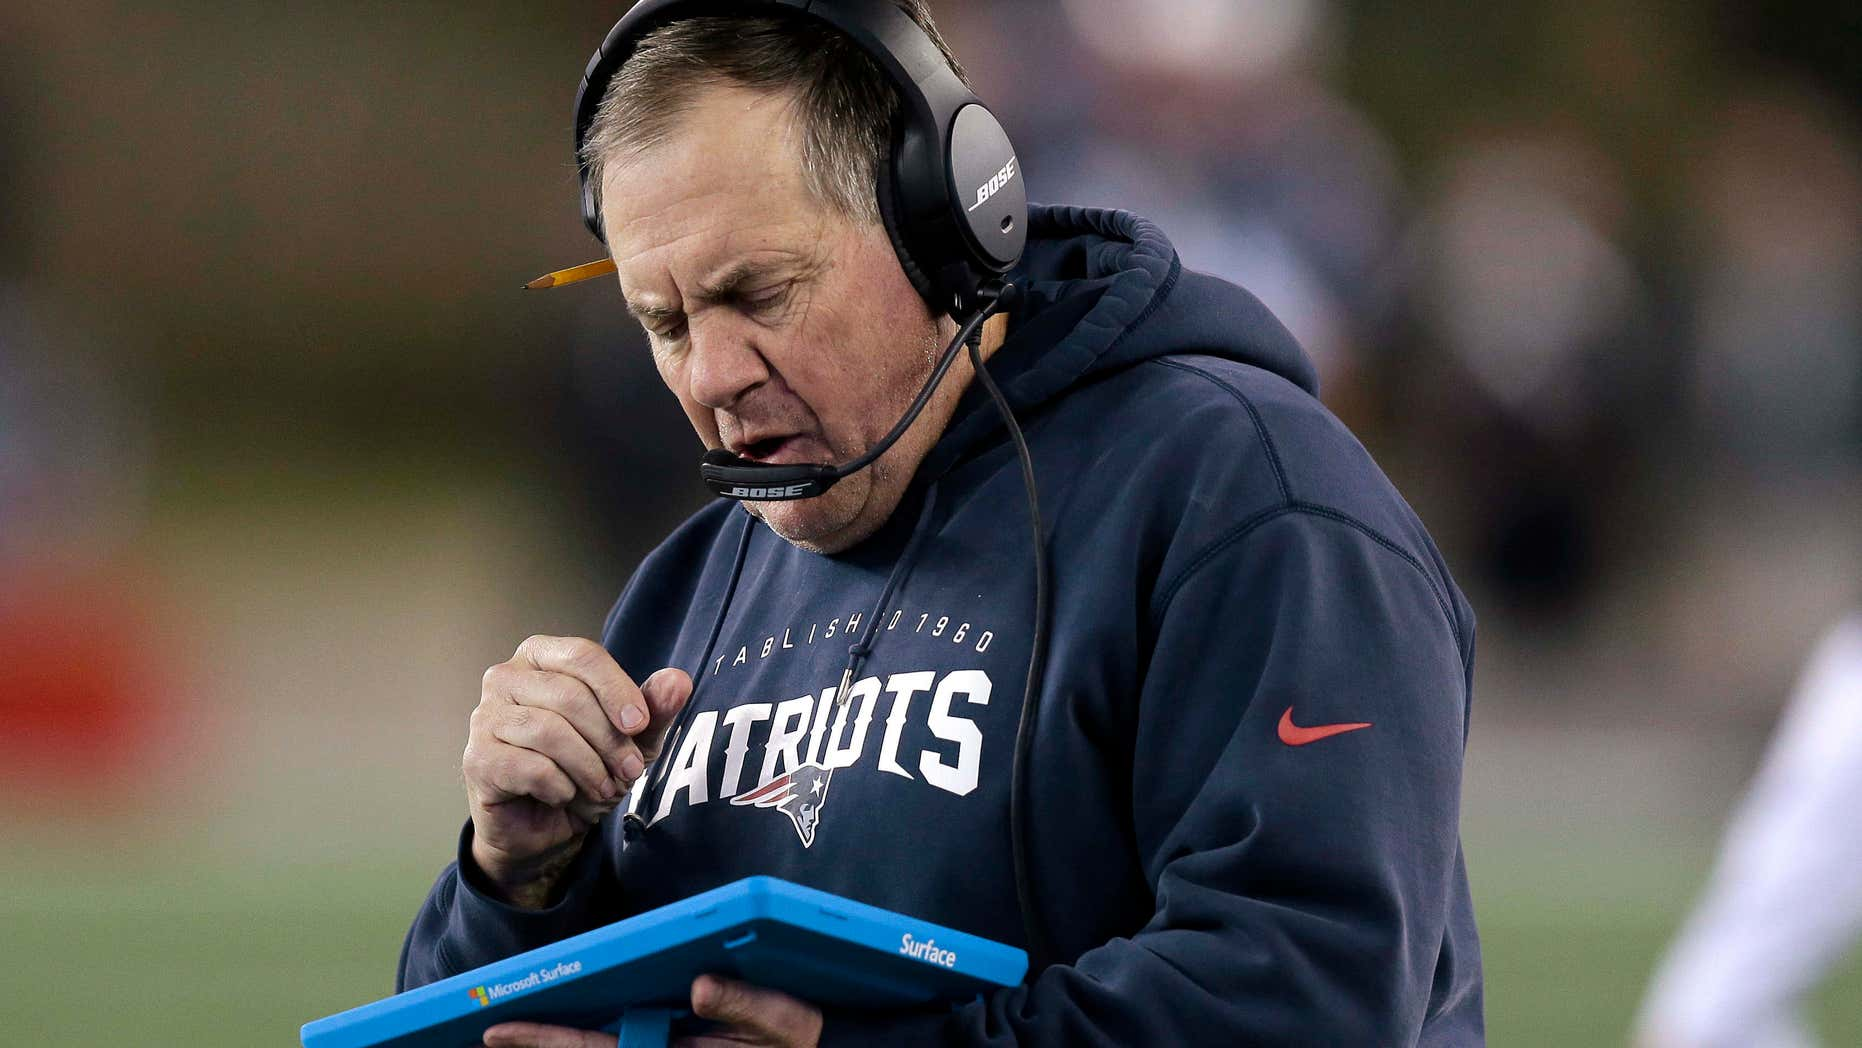 FILE - In this Dec. 6, 2015, file photo, New England Patriots head coach Bill Belichick studies a tablet device along the sideline during the first half of an NFL football game against the Philadelphia Eagles in Foxborough, Mass.